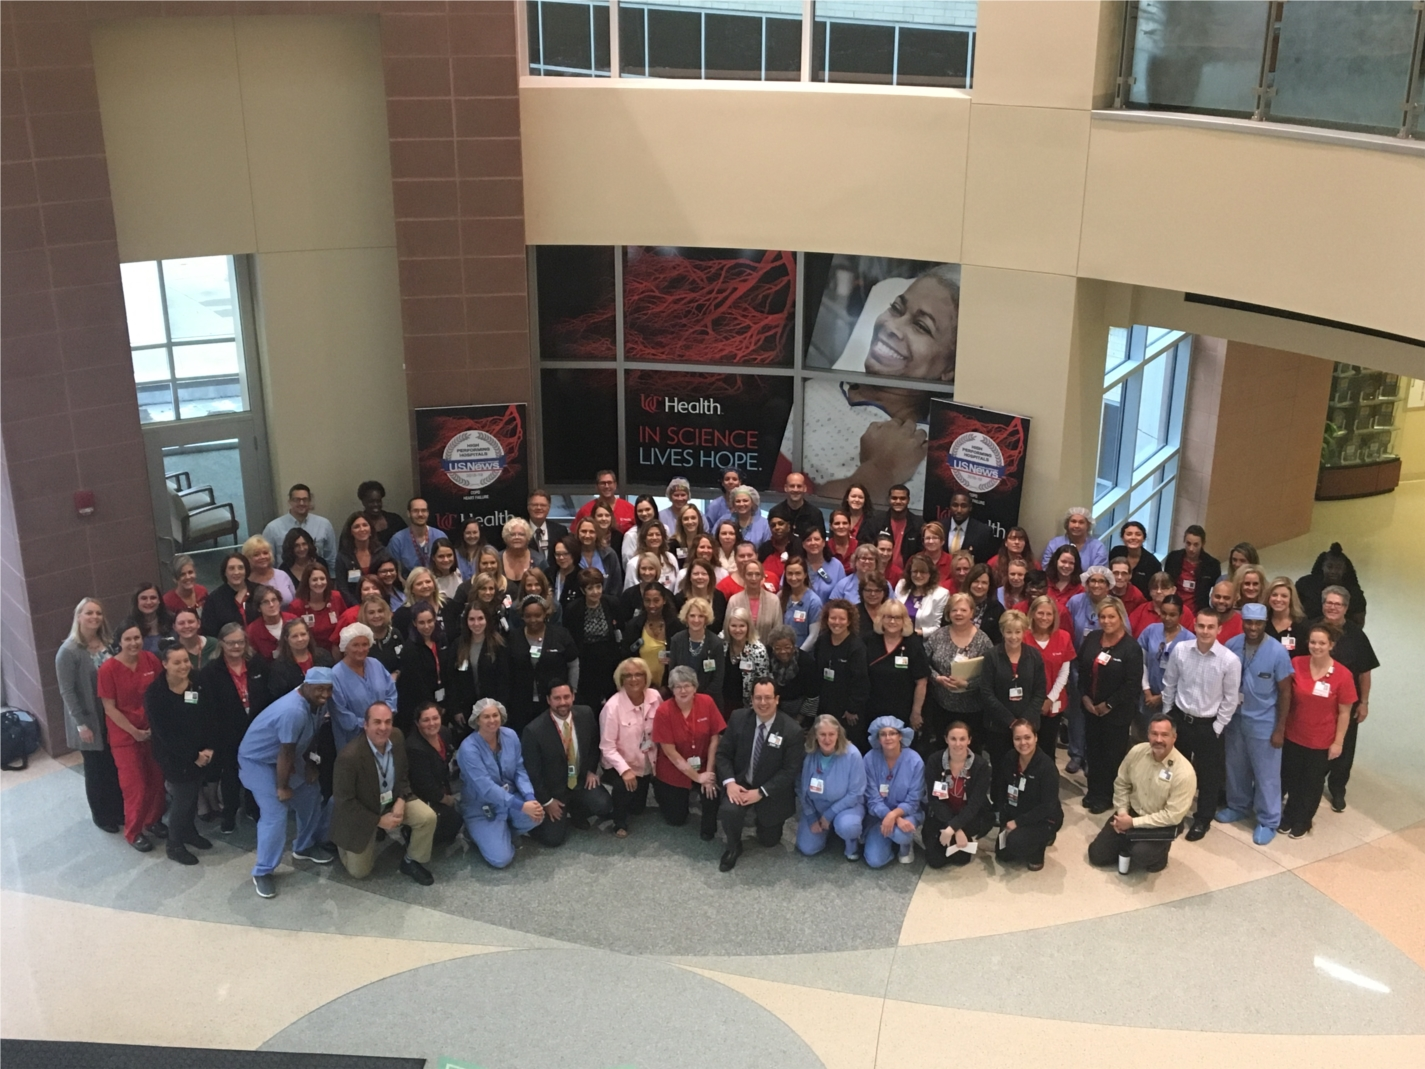 West Chester Hospital employees gathered to celebrate their receipt of Magnet status for nursing excellence.